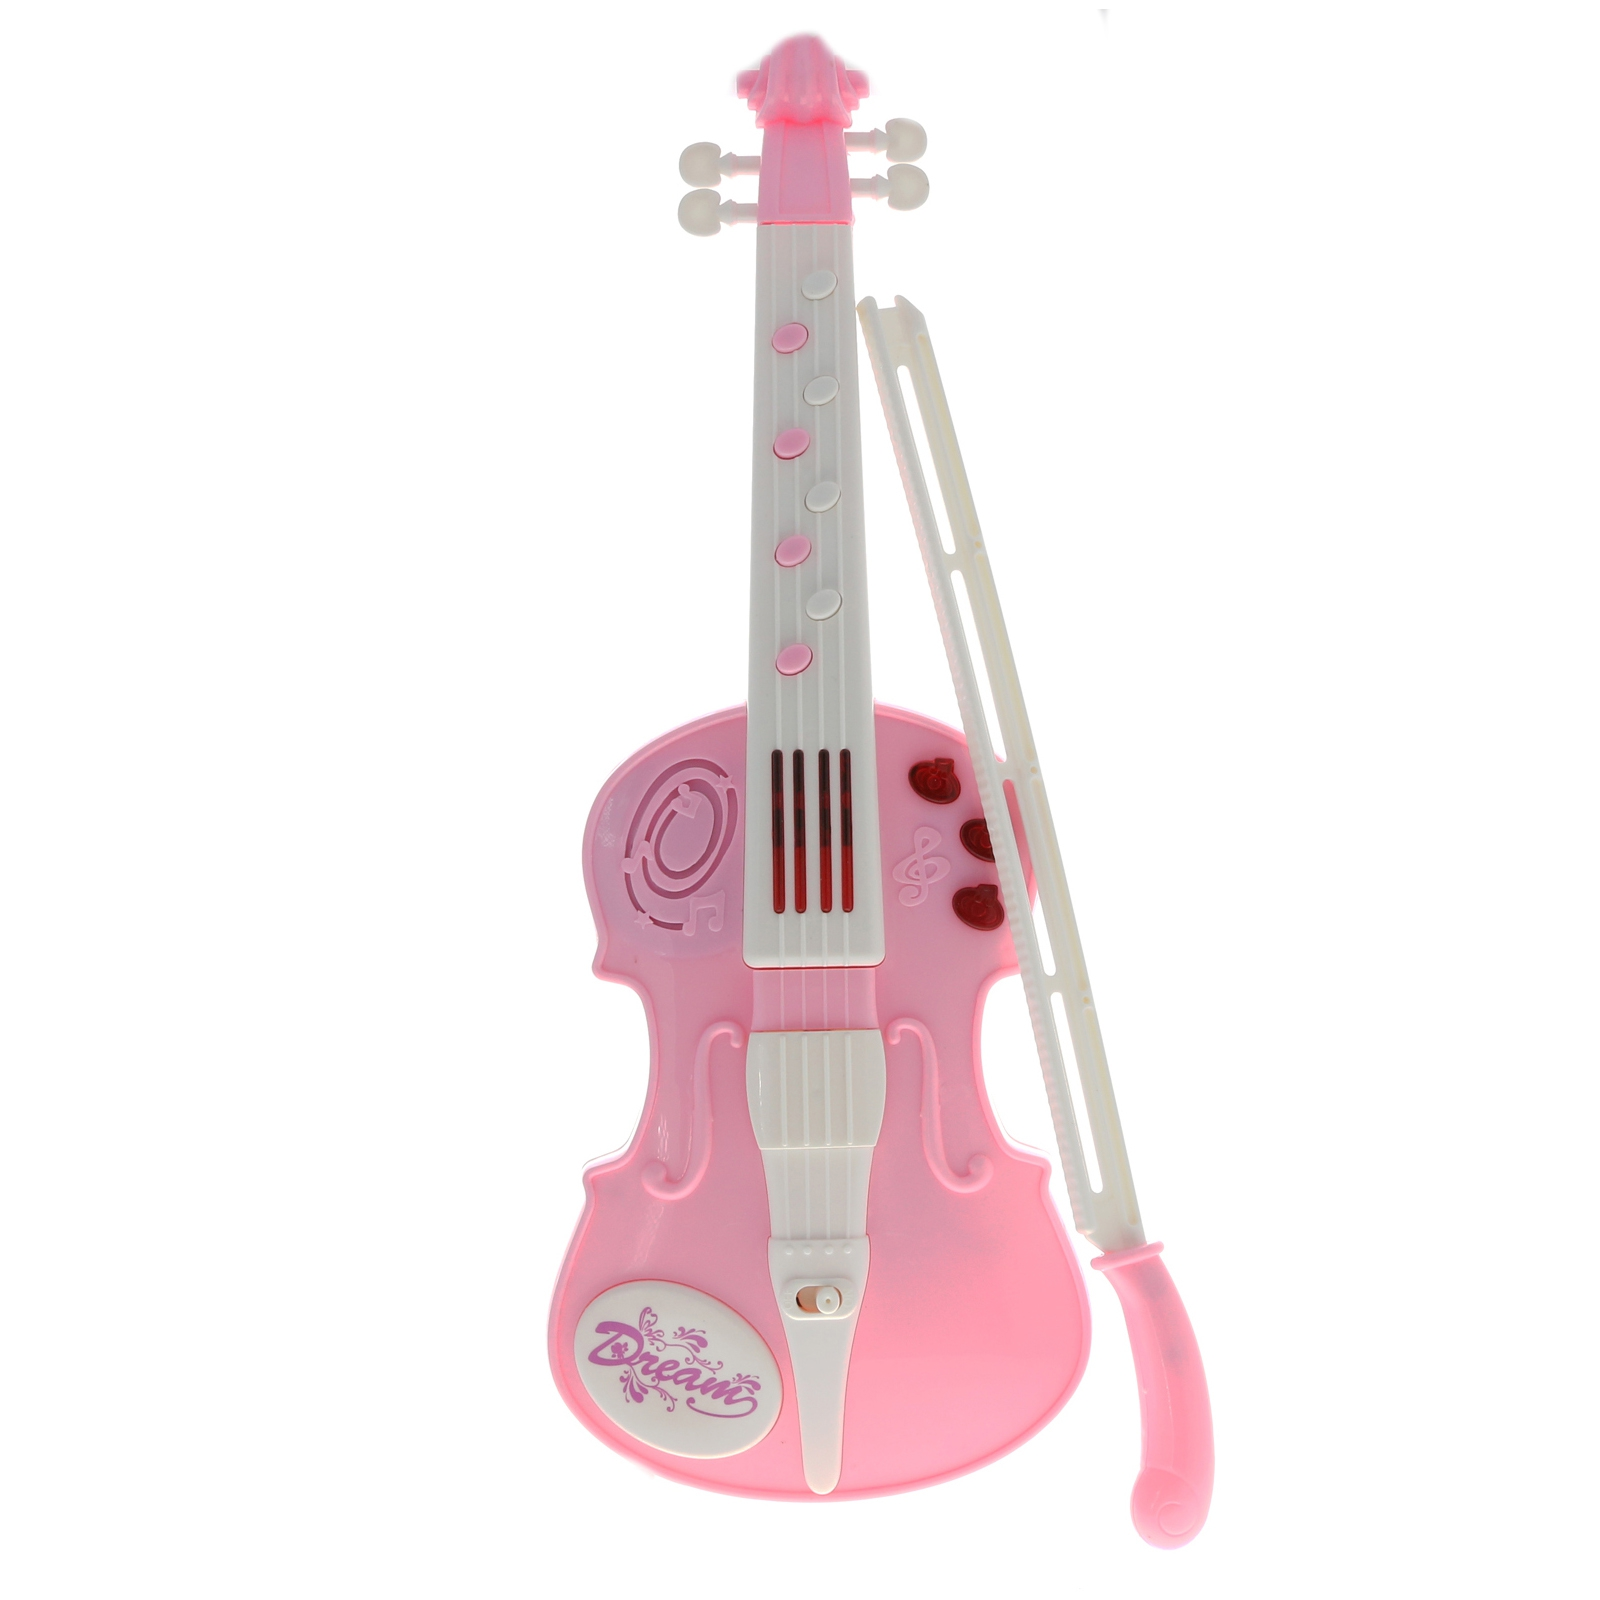 KidPlay Girls Musical Violin Instrument Pretend Play Kids Light Up Toy - Pink